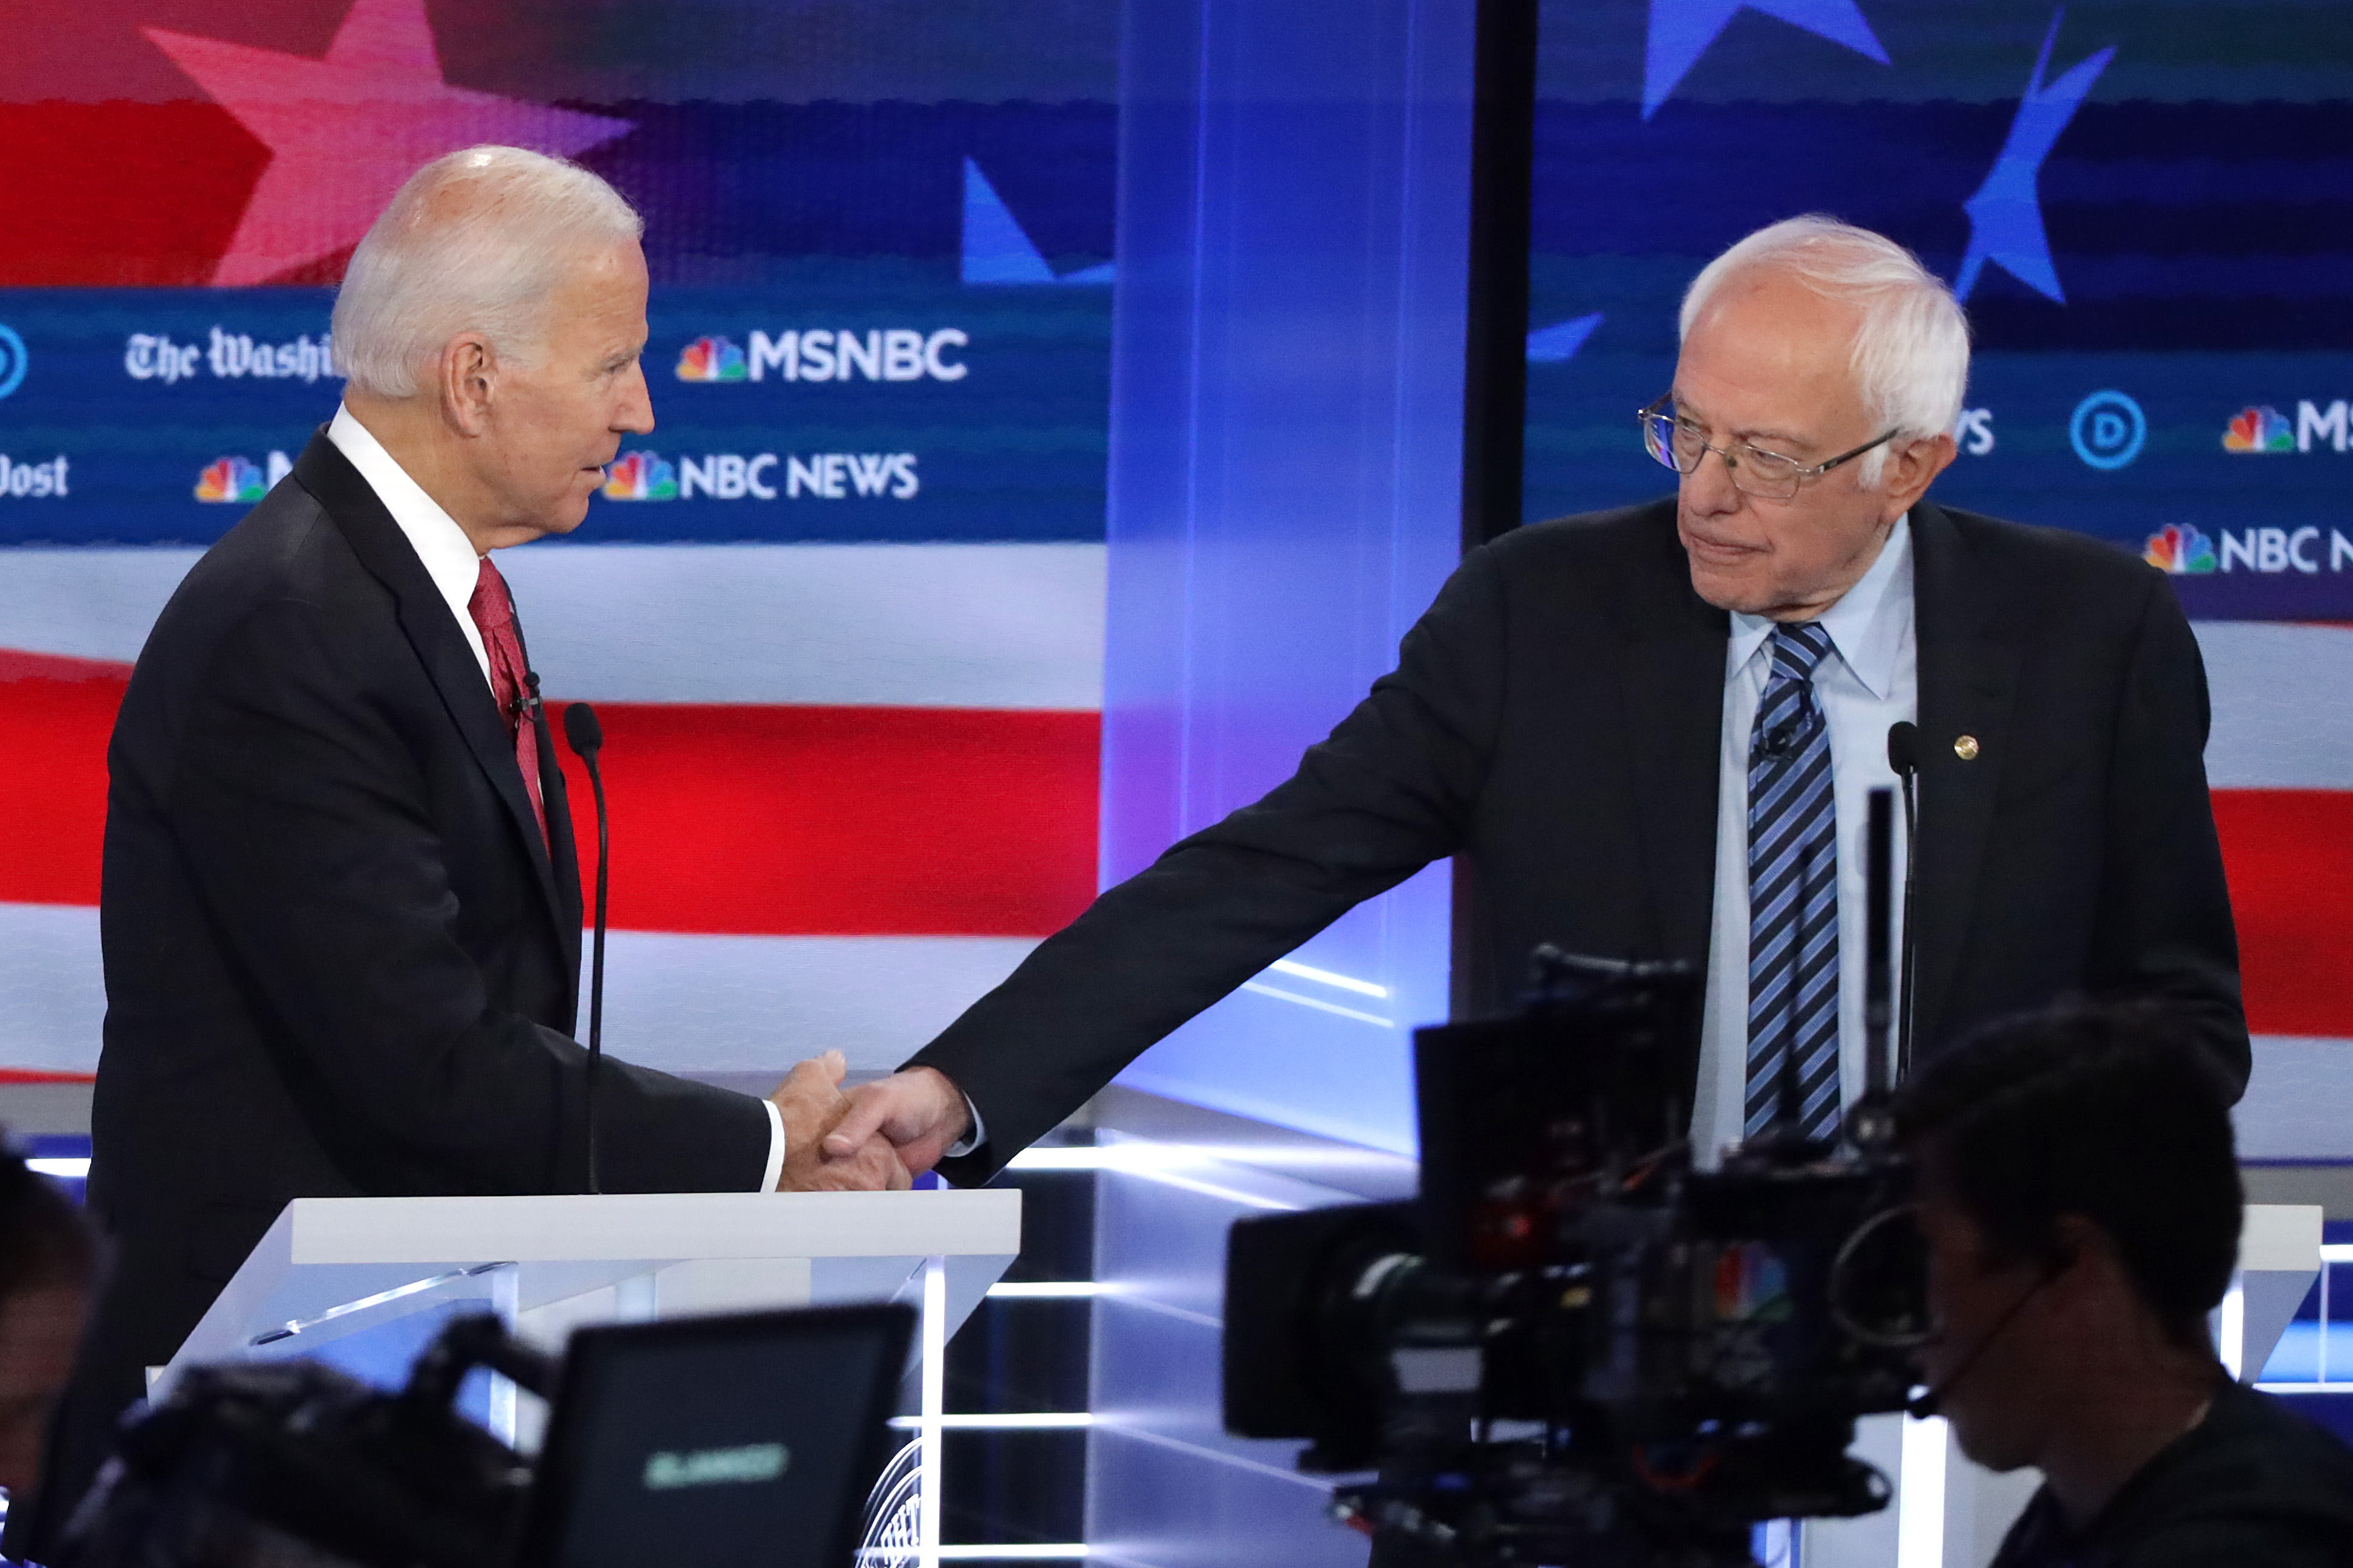 The next Democratic debate will take place right before the New Hampshire primary